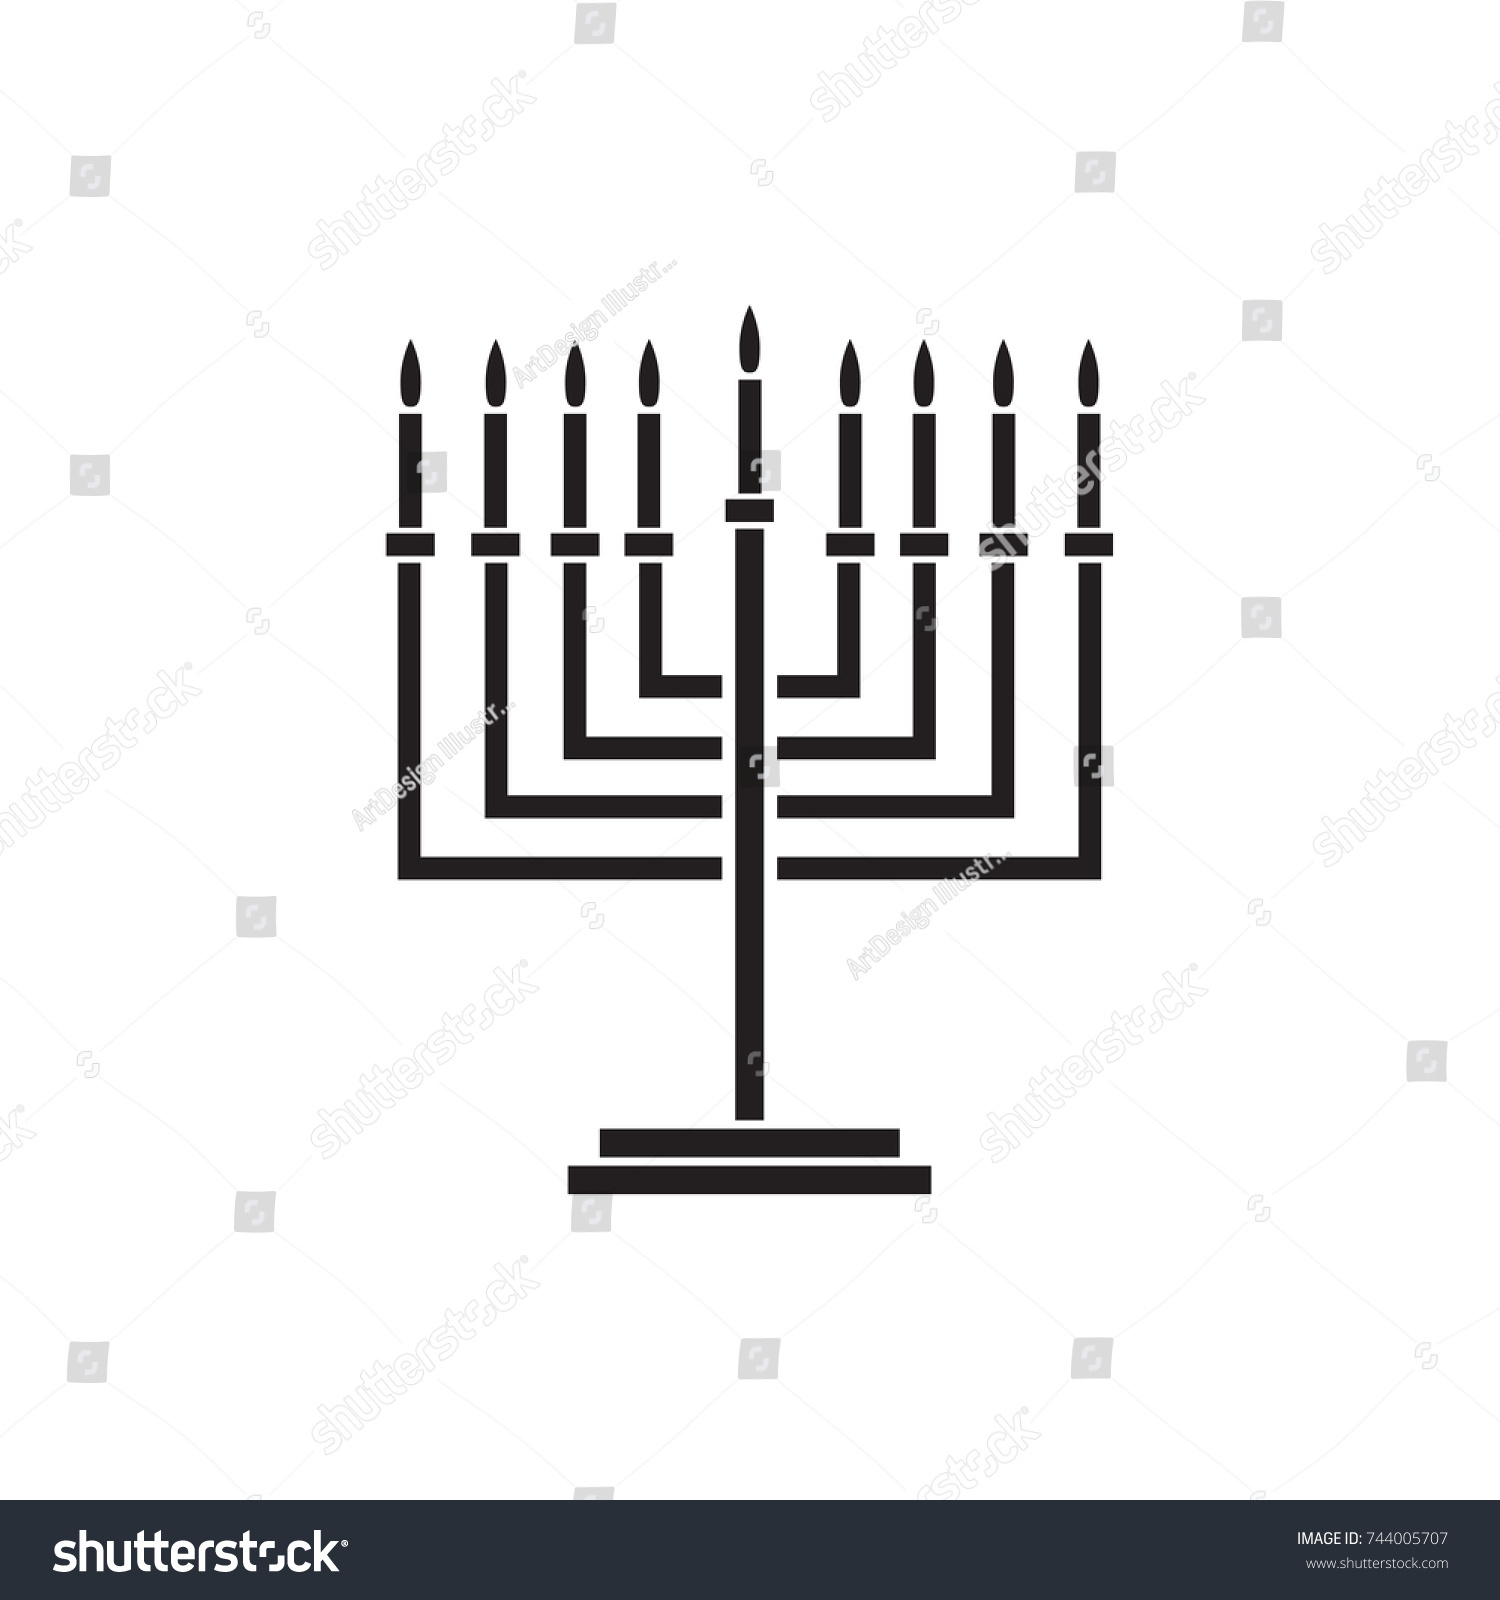 Menorah hanukkah icon jewish holiday symbol stock vector 744005707 menorah hanukkah icon jewish holiday symbol menorah light candelabra with candles silhouette isolated white biocorpaavc Image collections